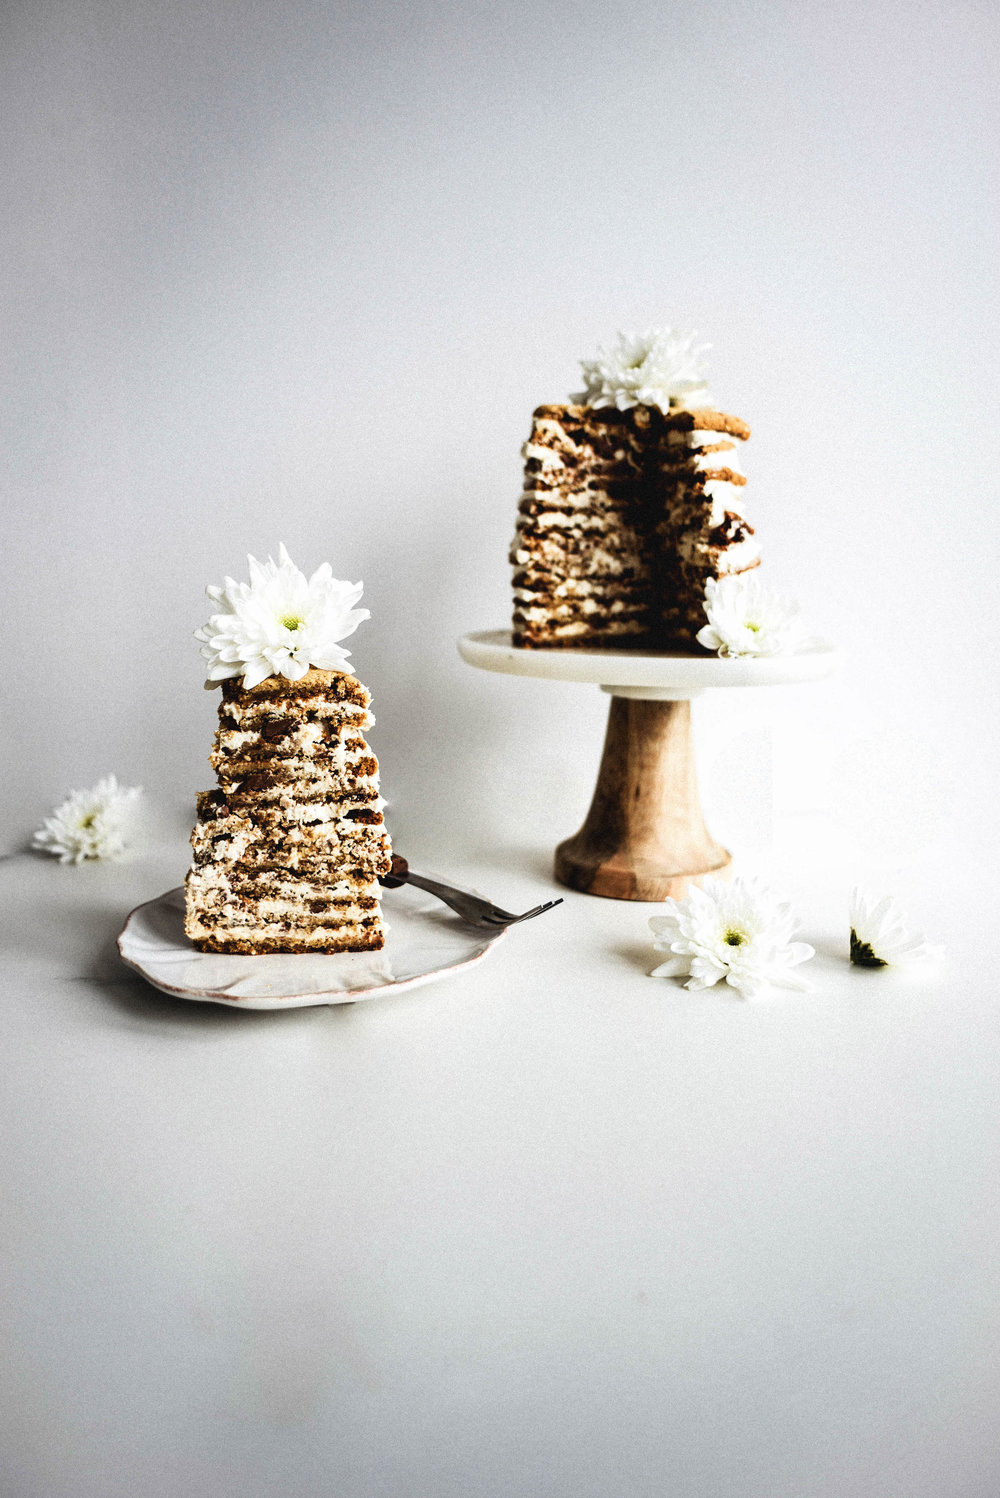 Toasted-Sesame-and-Chocolate-Cookie-Cake-with-Tahini-Halva-Buttercream-4.jpg